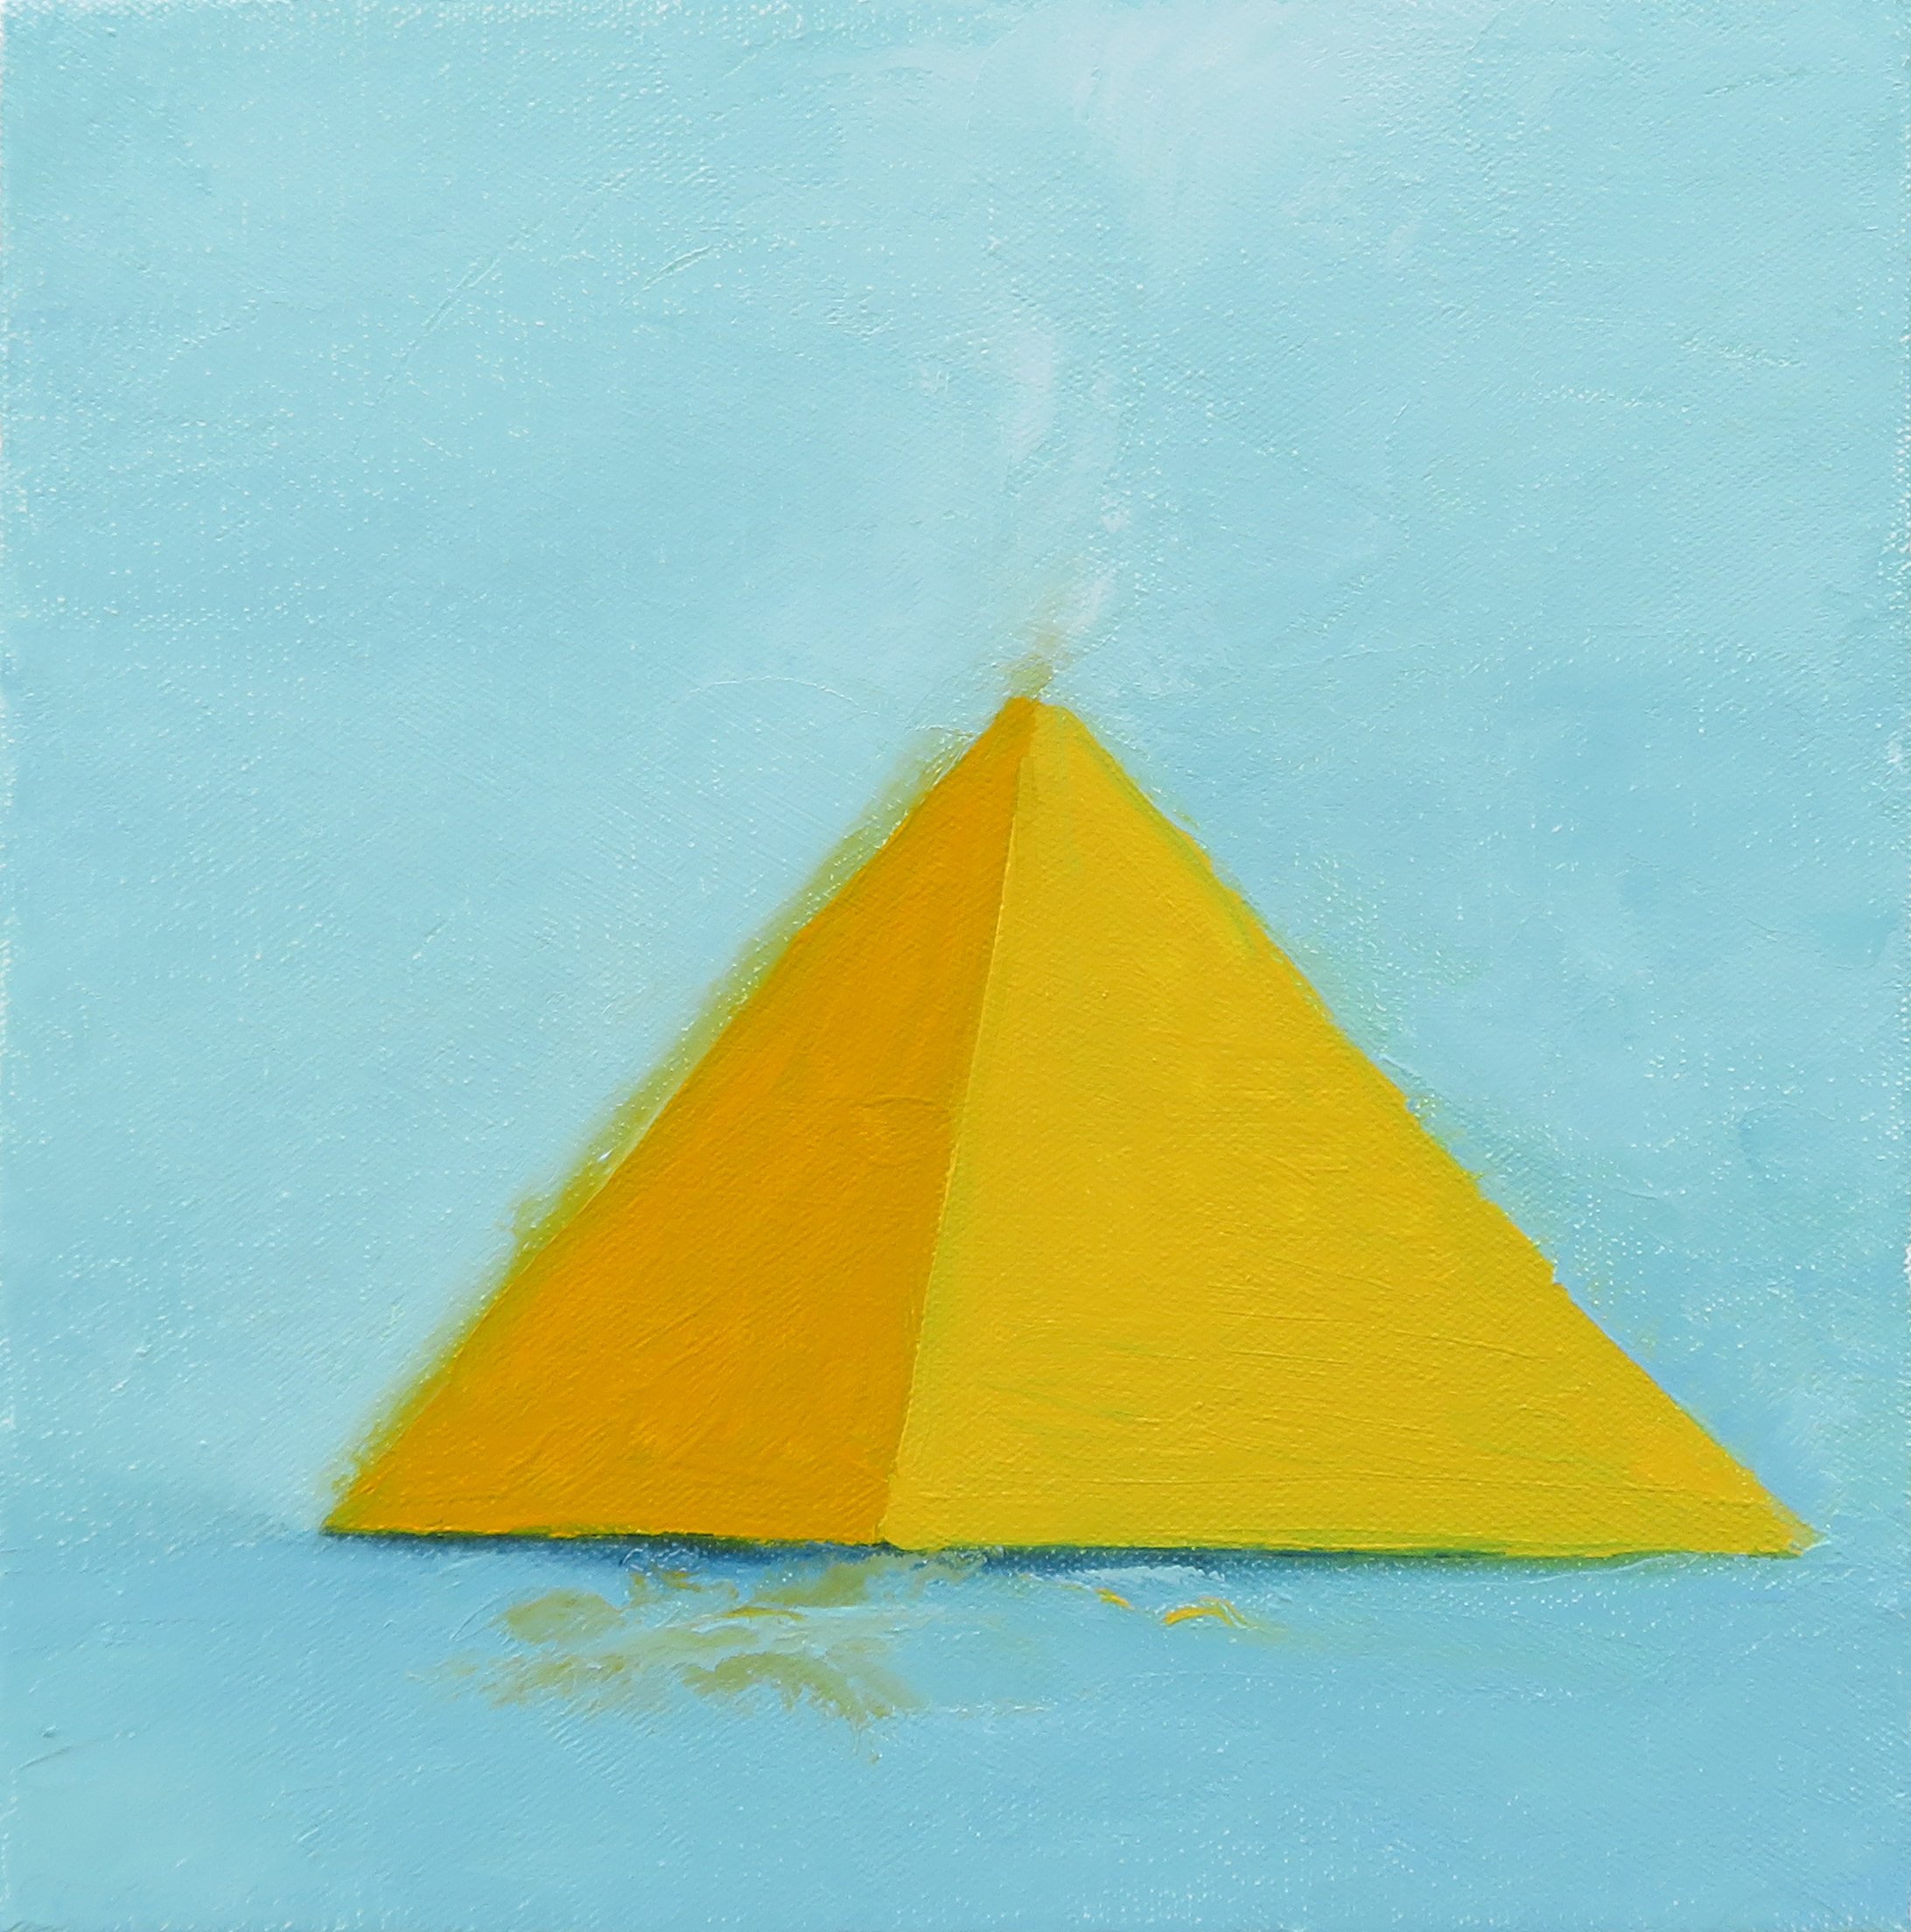 Pyramid 1, Yellow